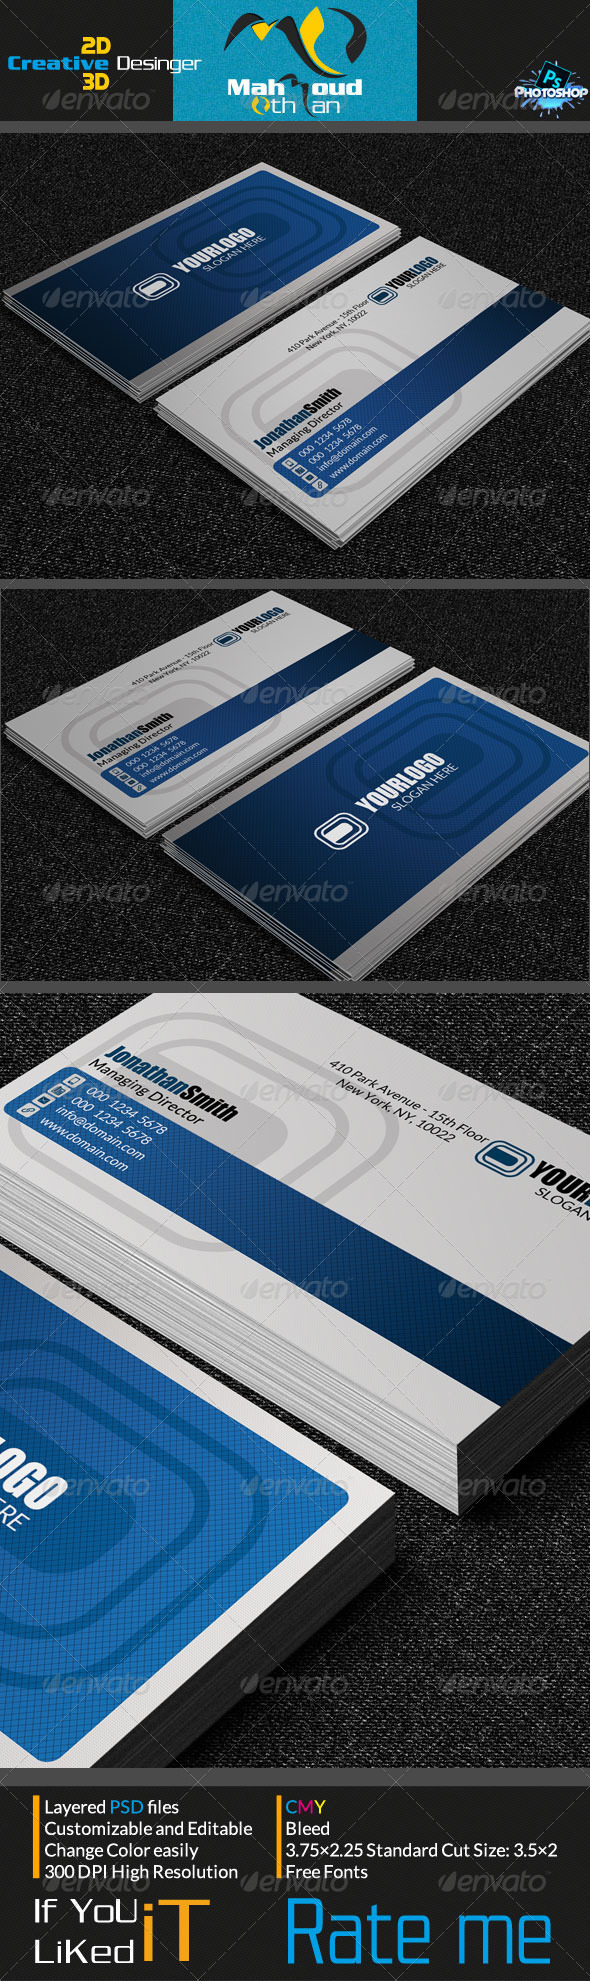 GraphicRiver Creative Business Card V04 7199084